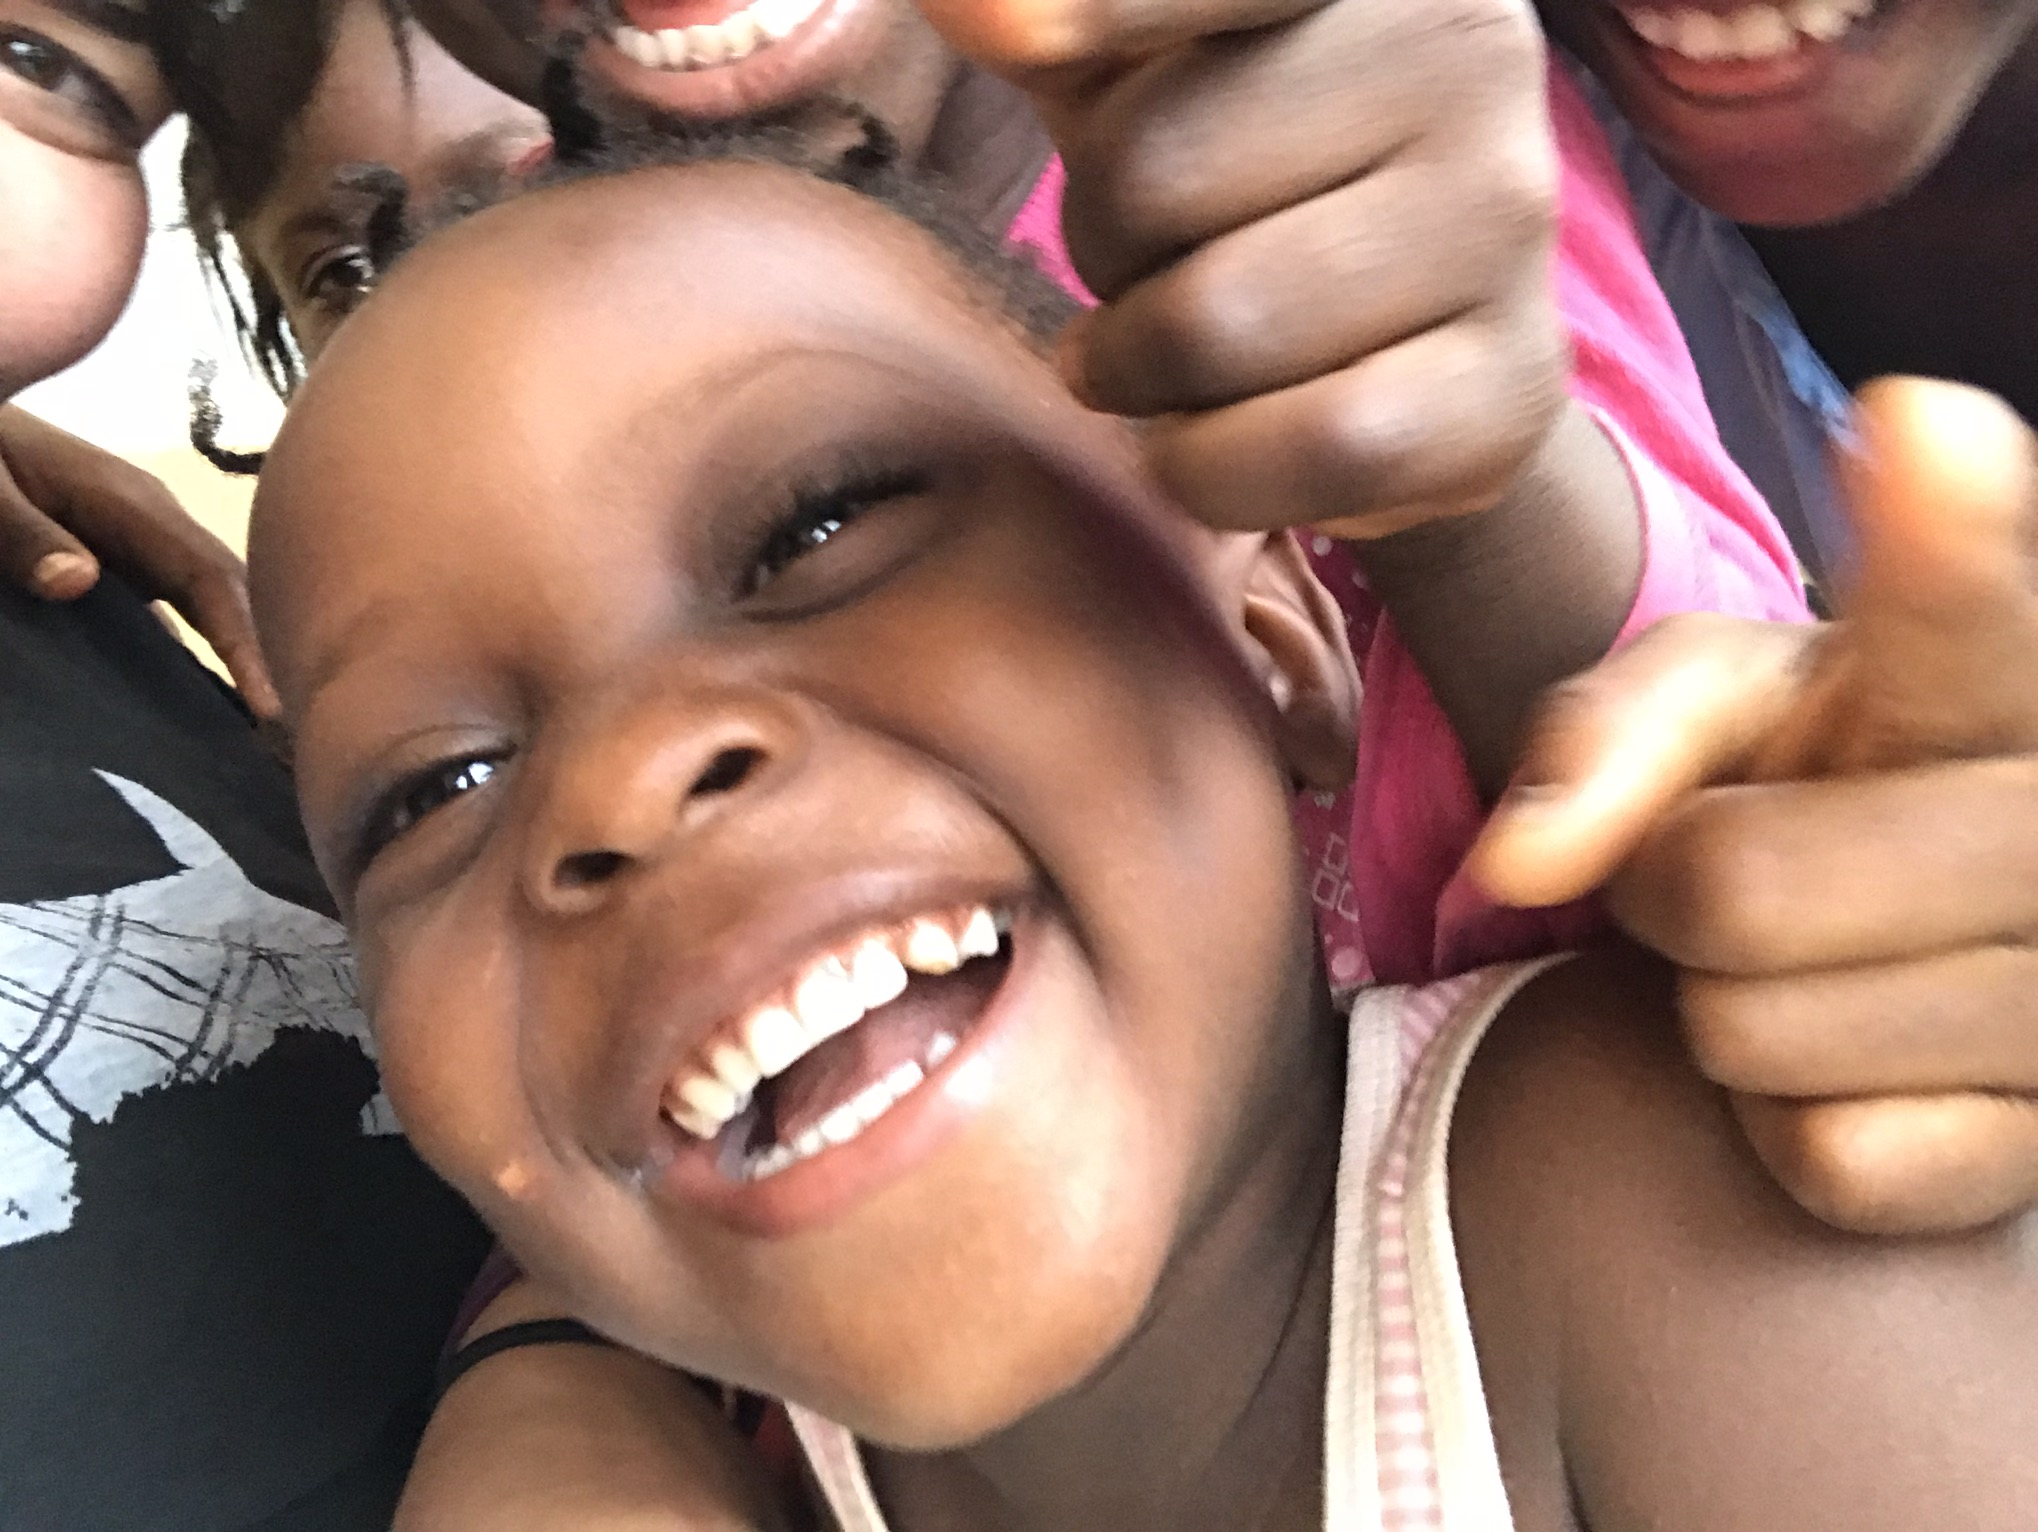 """The camp kids also liked my camera phone.  A lot.  At one point they came and greeted me.  I said hello and we chatted a bit.  And then there was an awkward silence until one of them blurted out, """"Selfie!"""""""